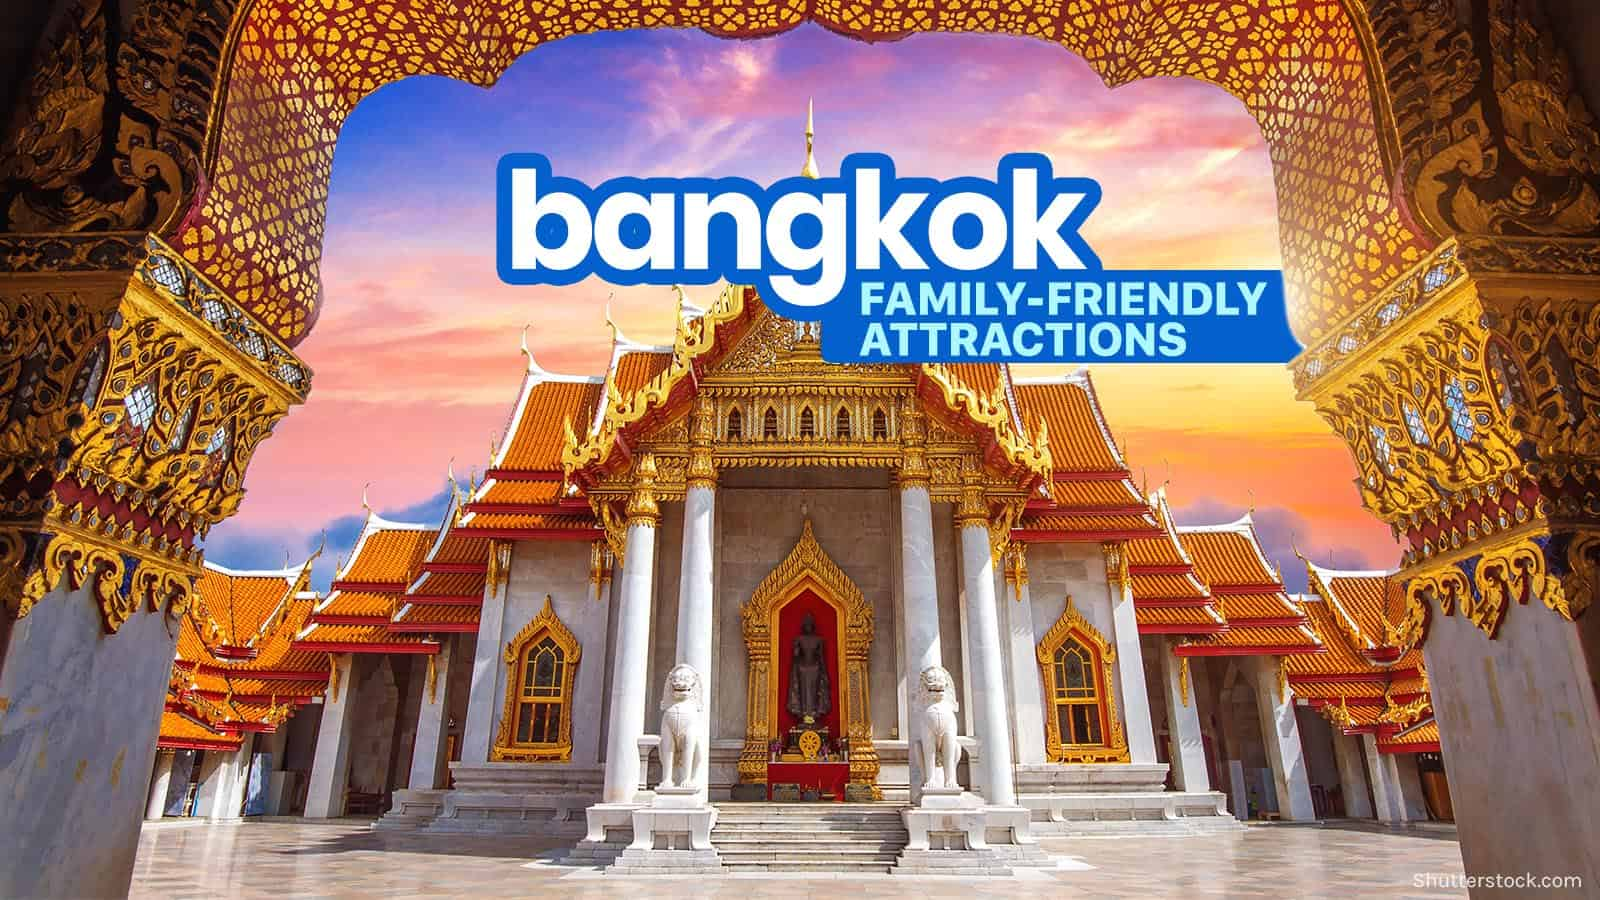 BANGKOK ATTRACTIONS: 10 Family-Friendly Places to Visit